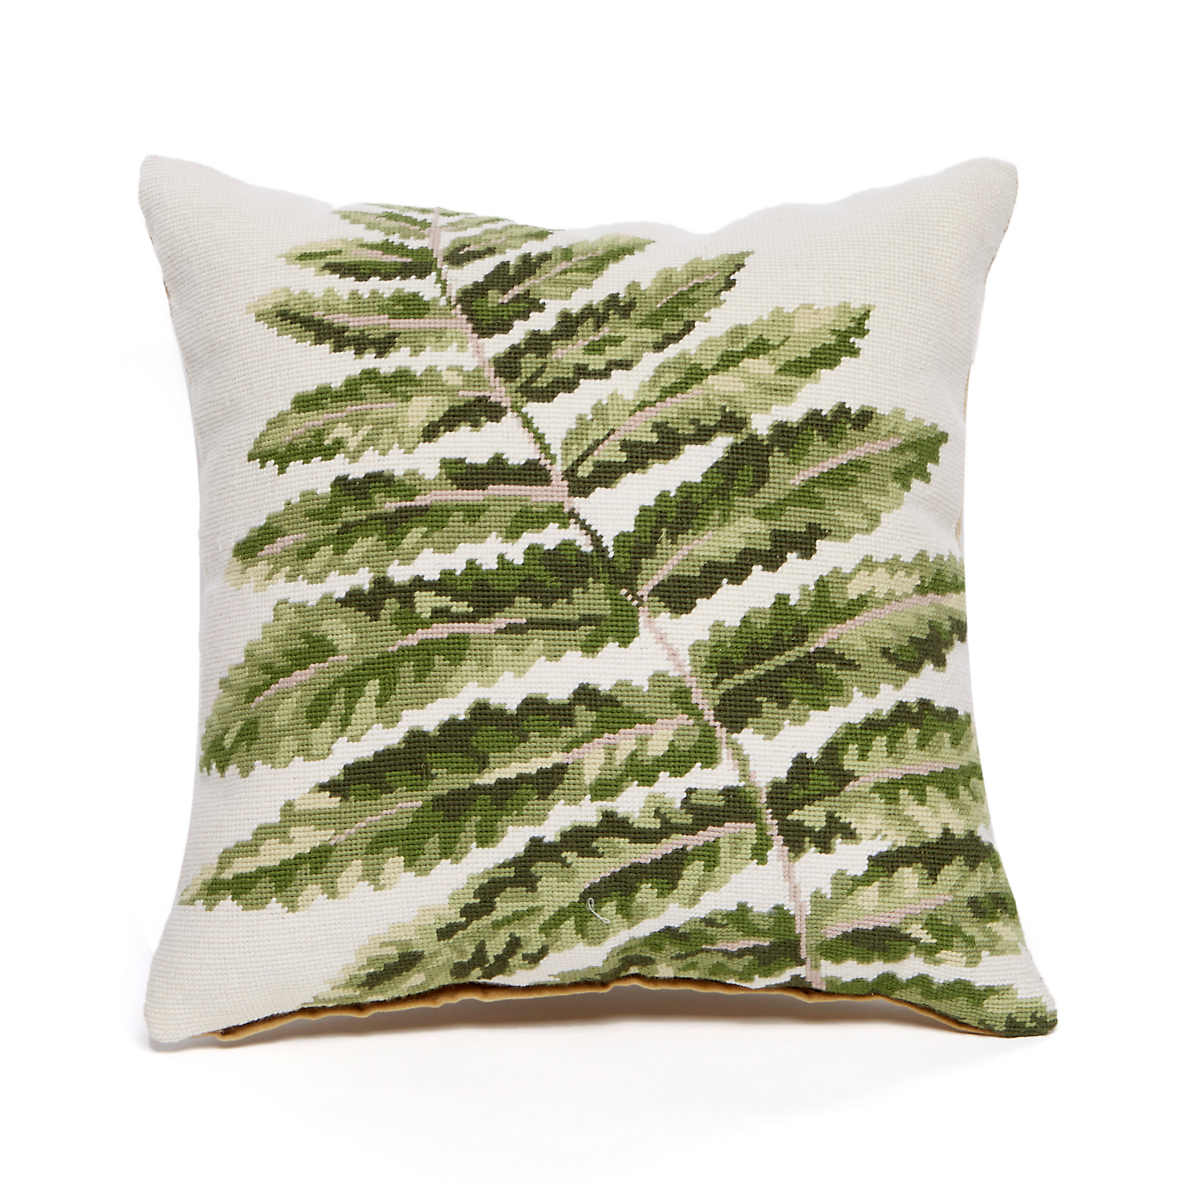 Garden Feather Fern Needlepoint Pillow